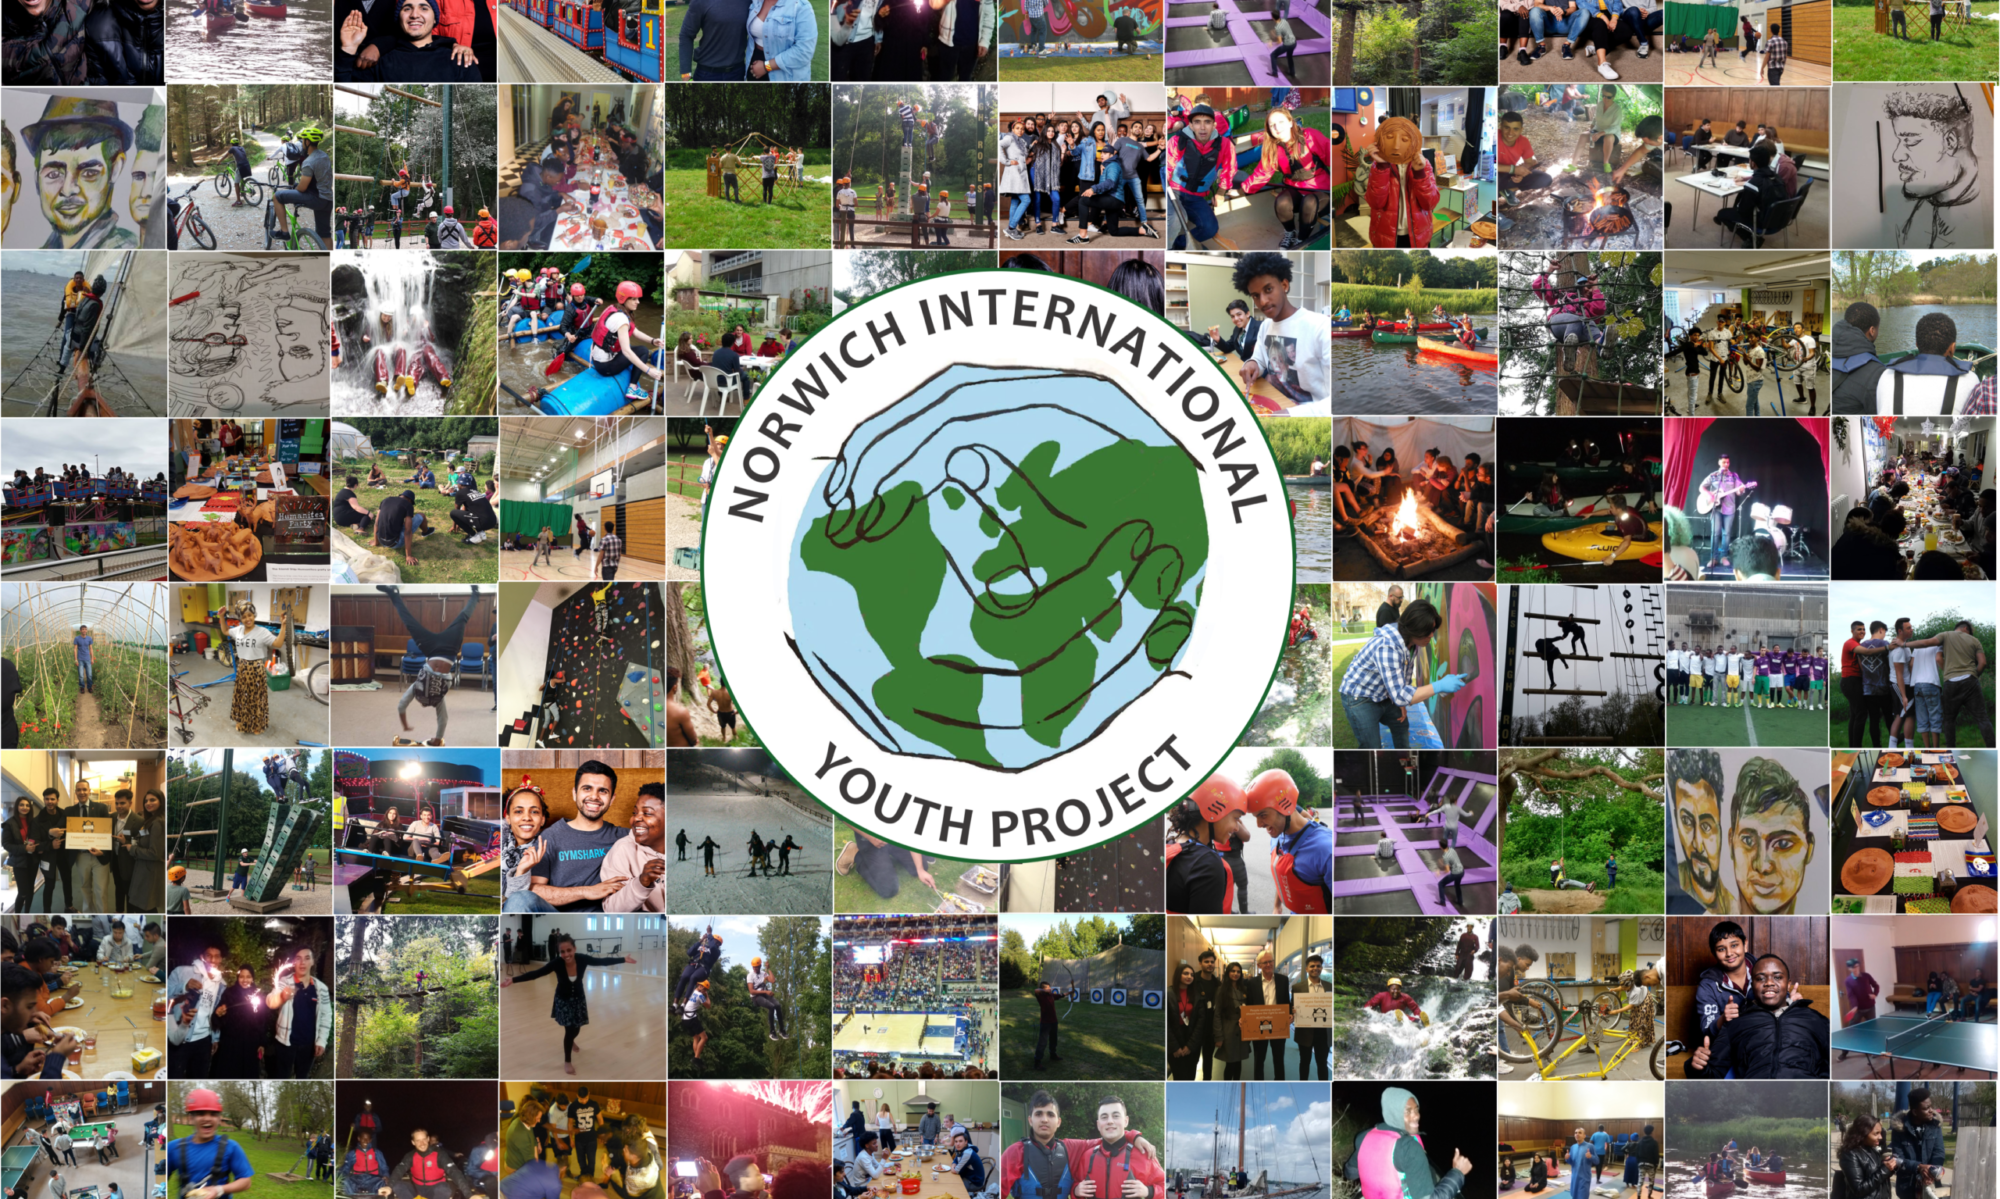 Norwich International Youth Project